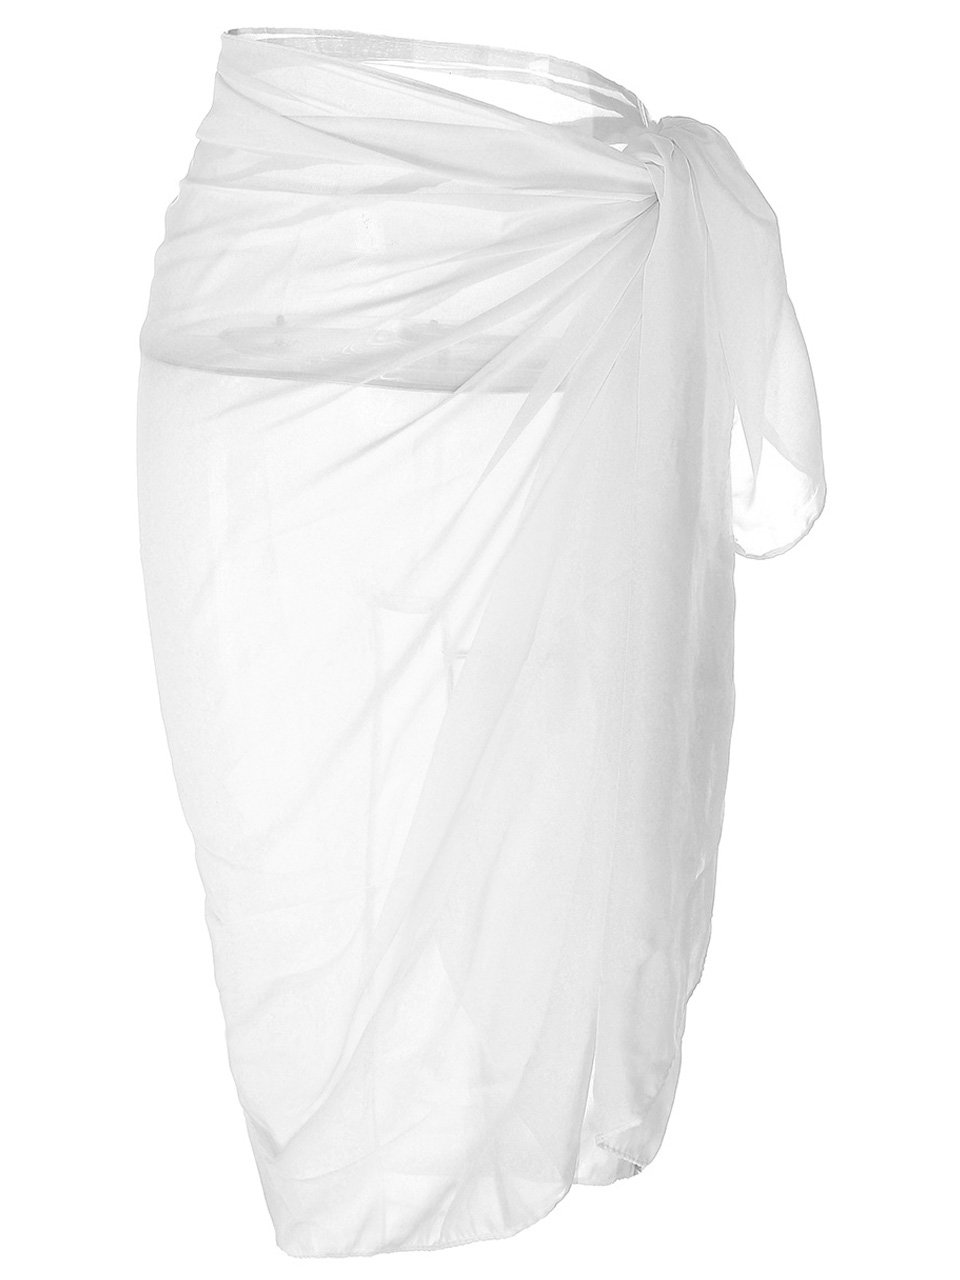 Ayliss Womens Swimwear Chiffon Cover up Solid Color Beach Sarong Swimsuit Wrap, White, One Size